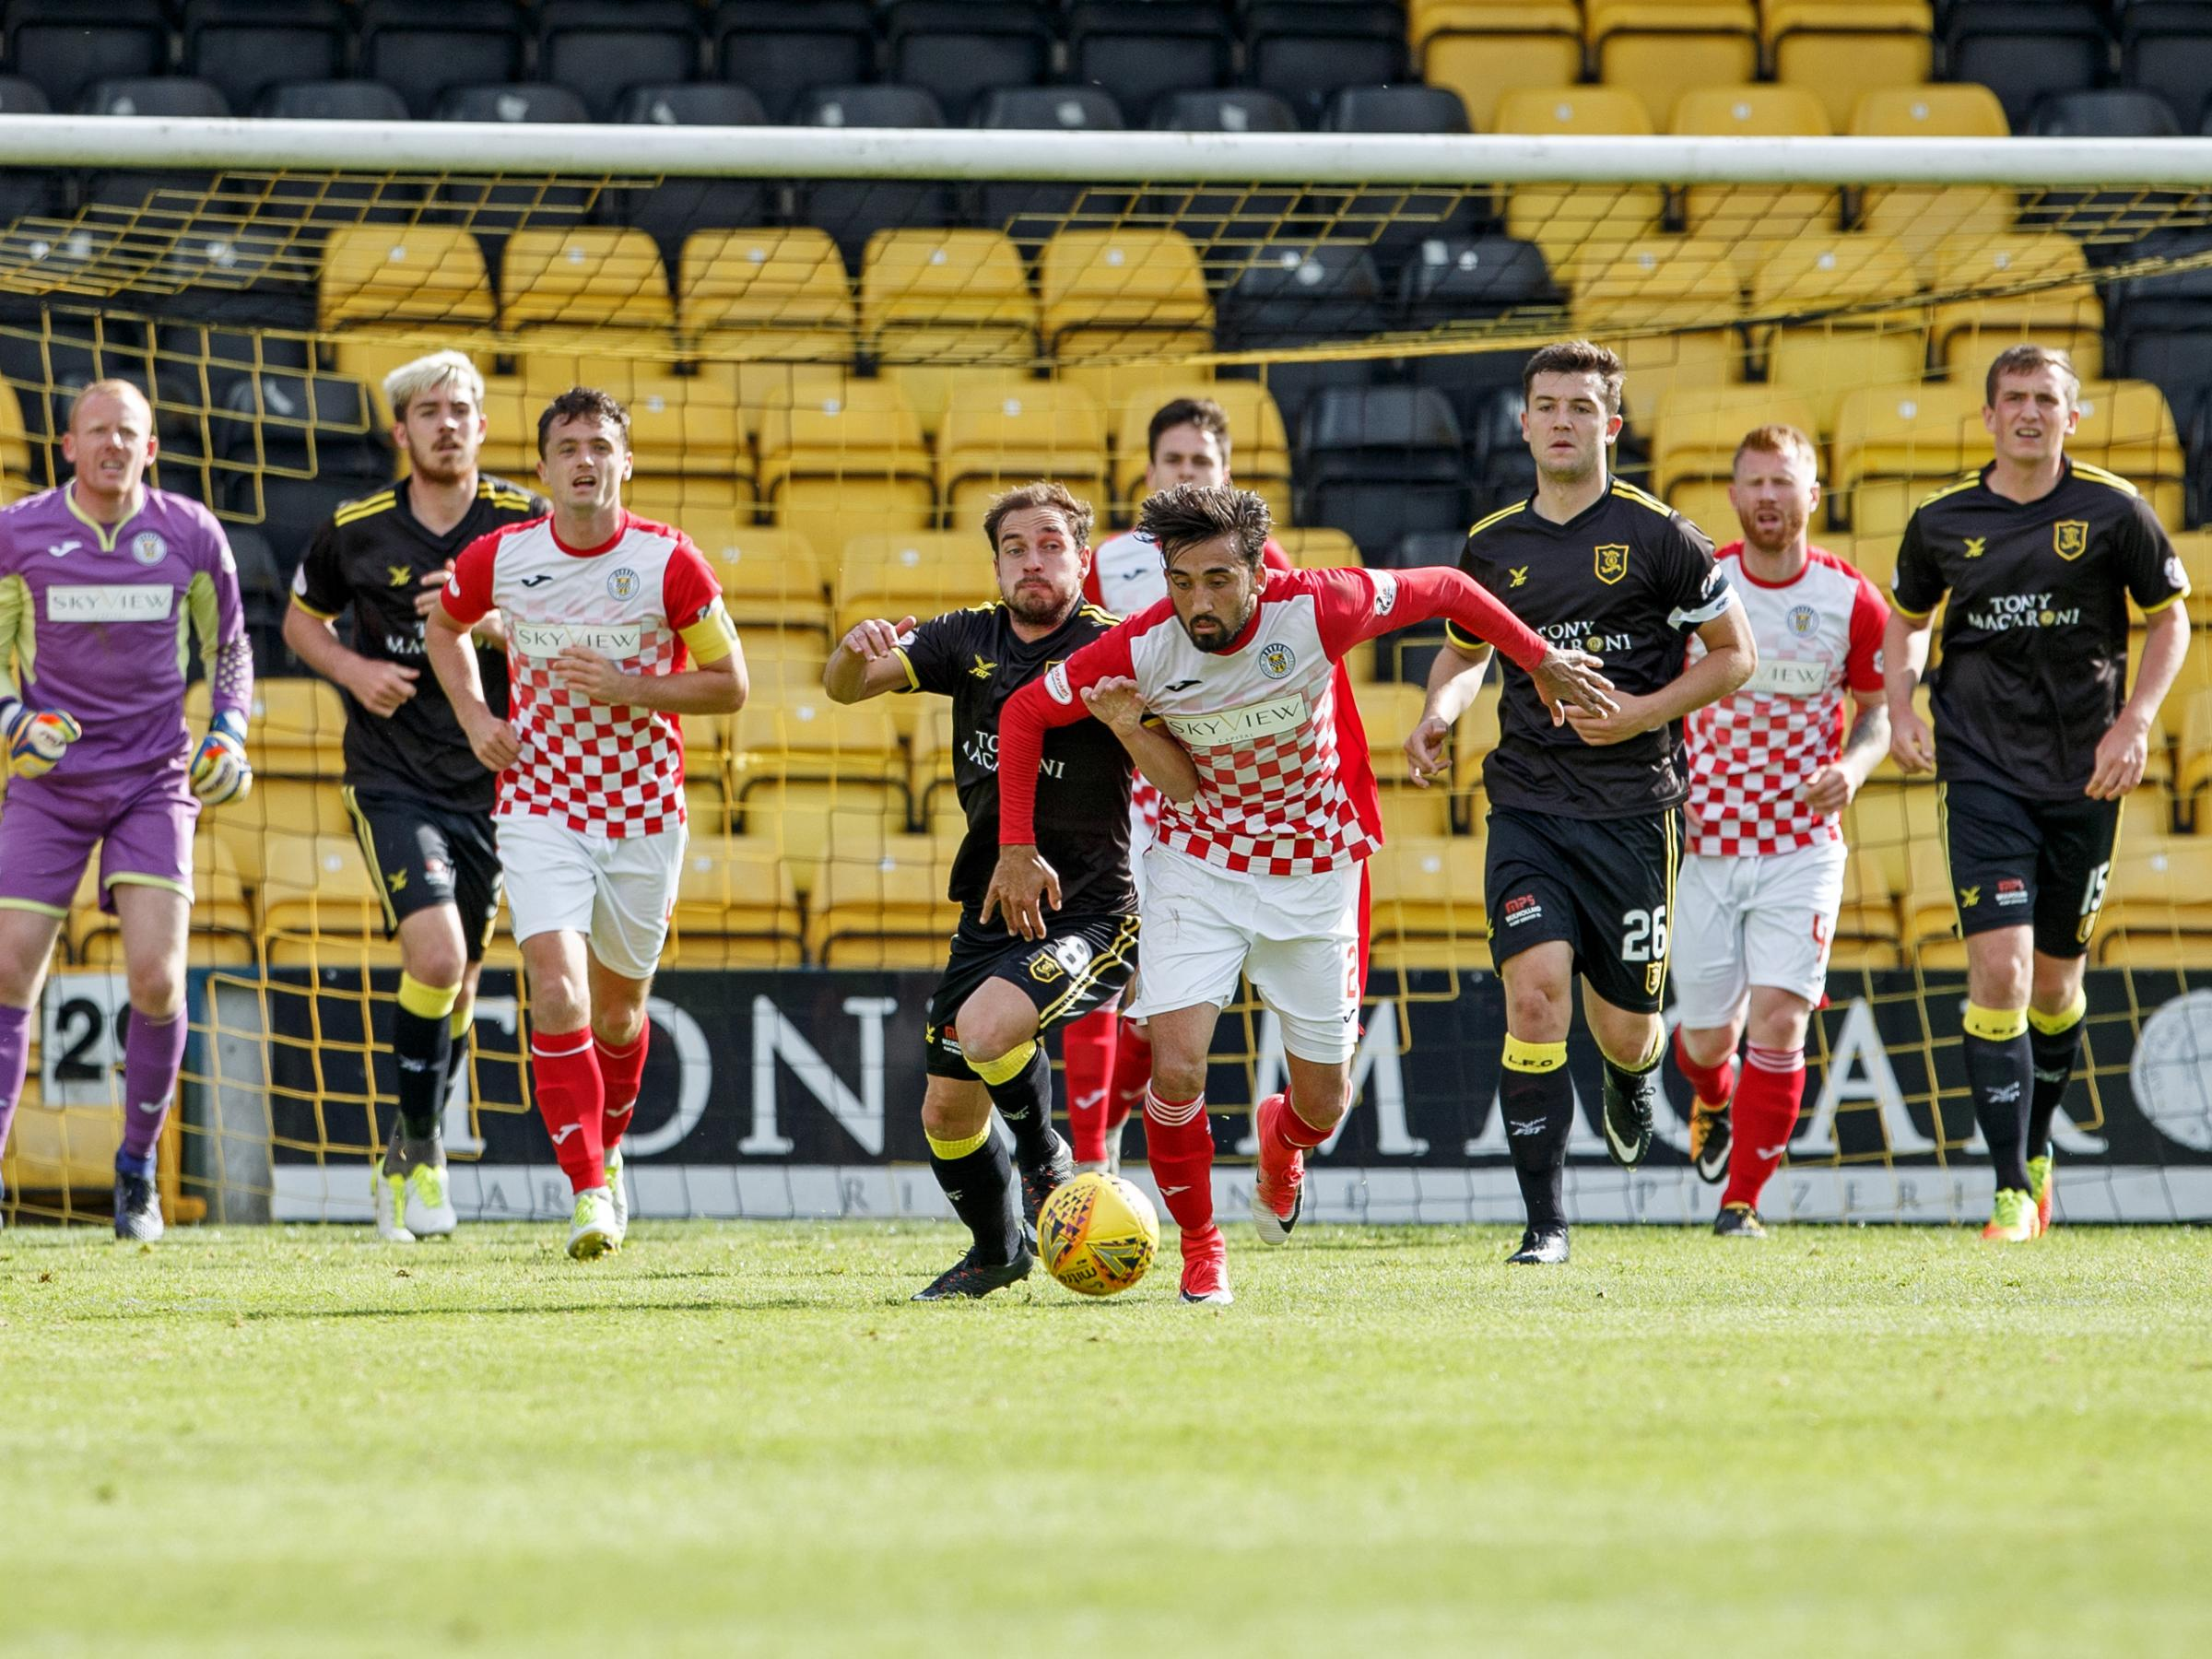 St Mirren defender insists Livingston match is a must-win game